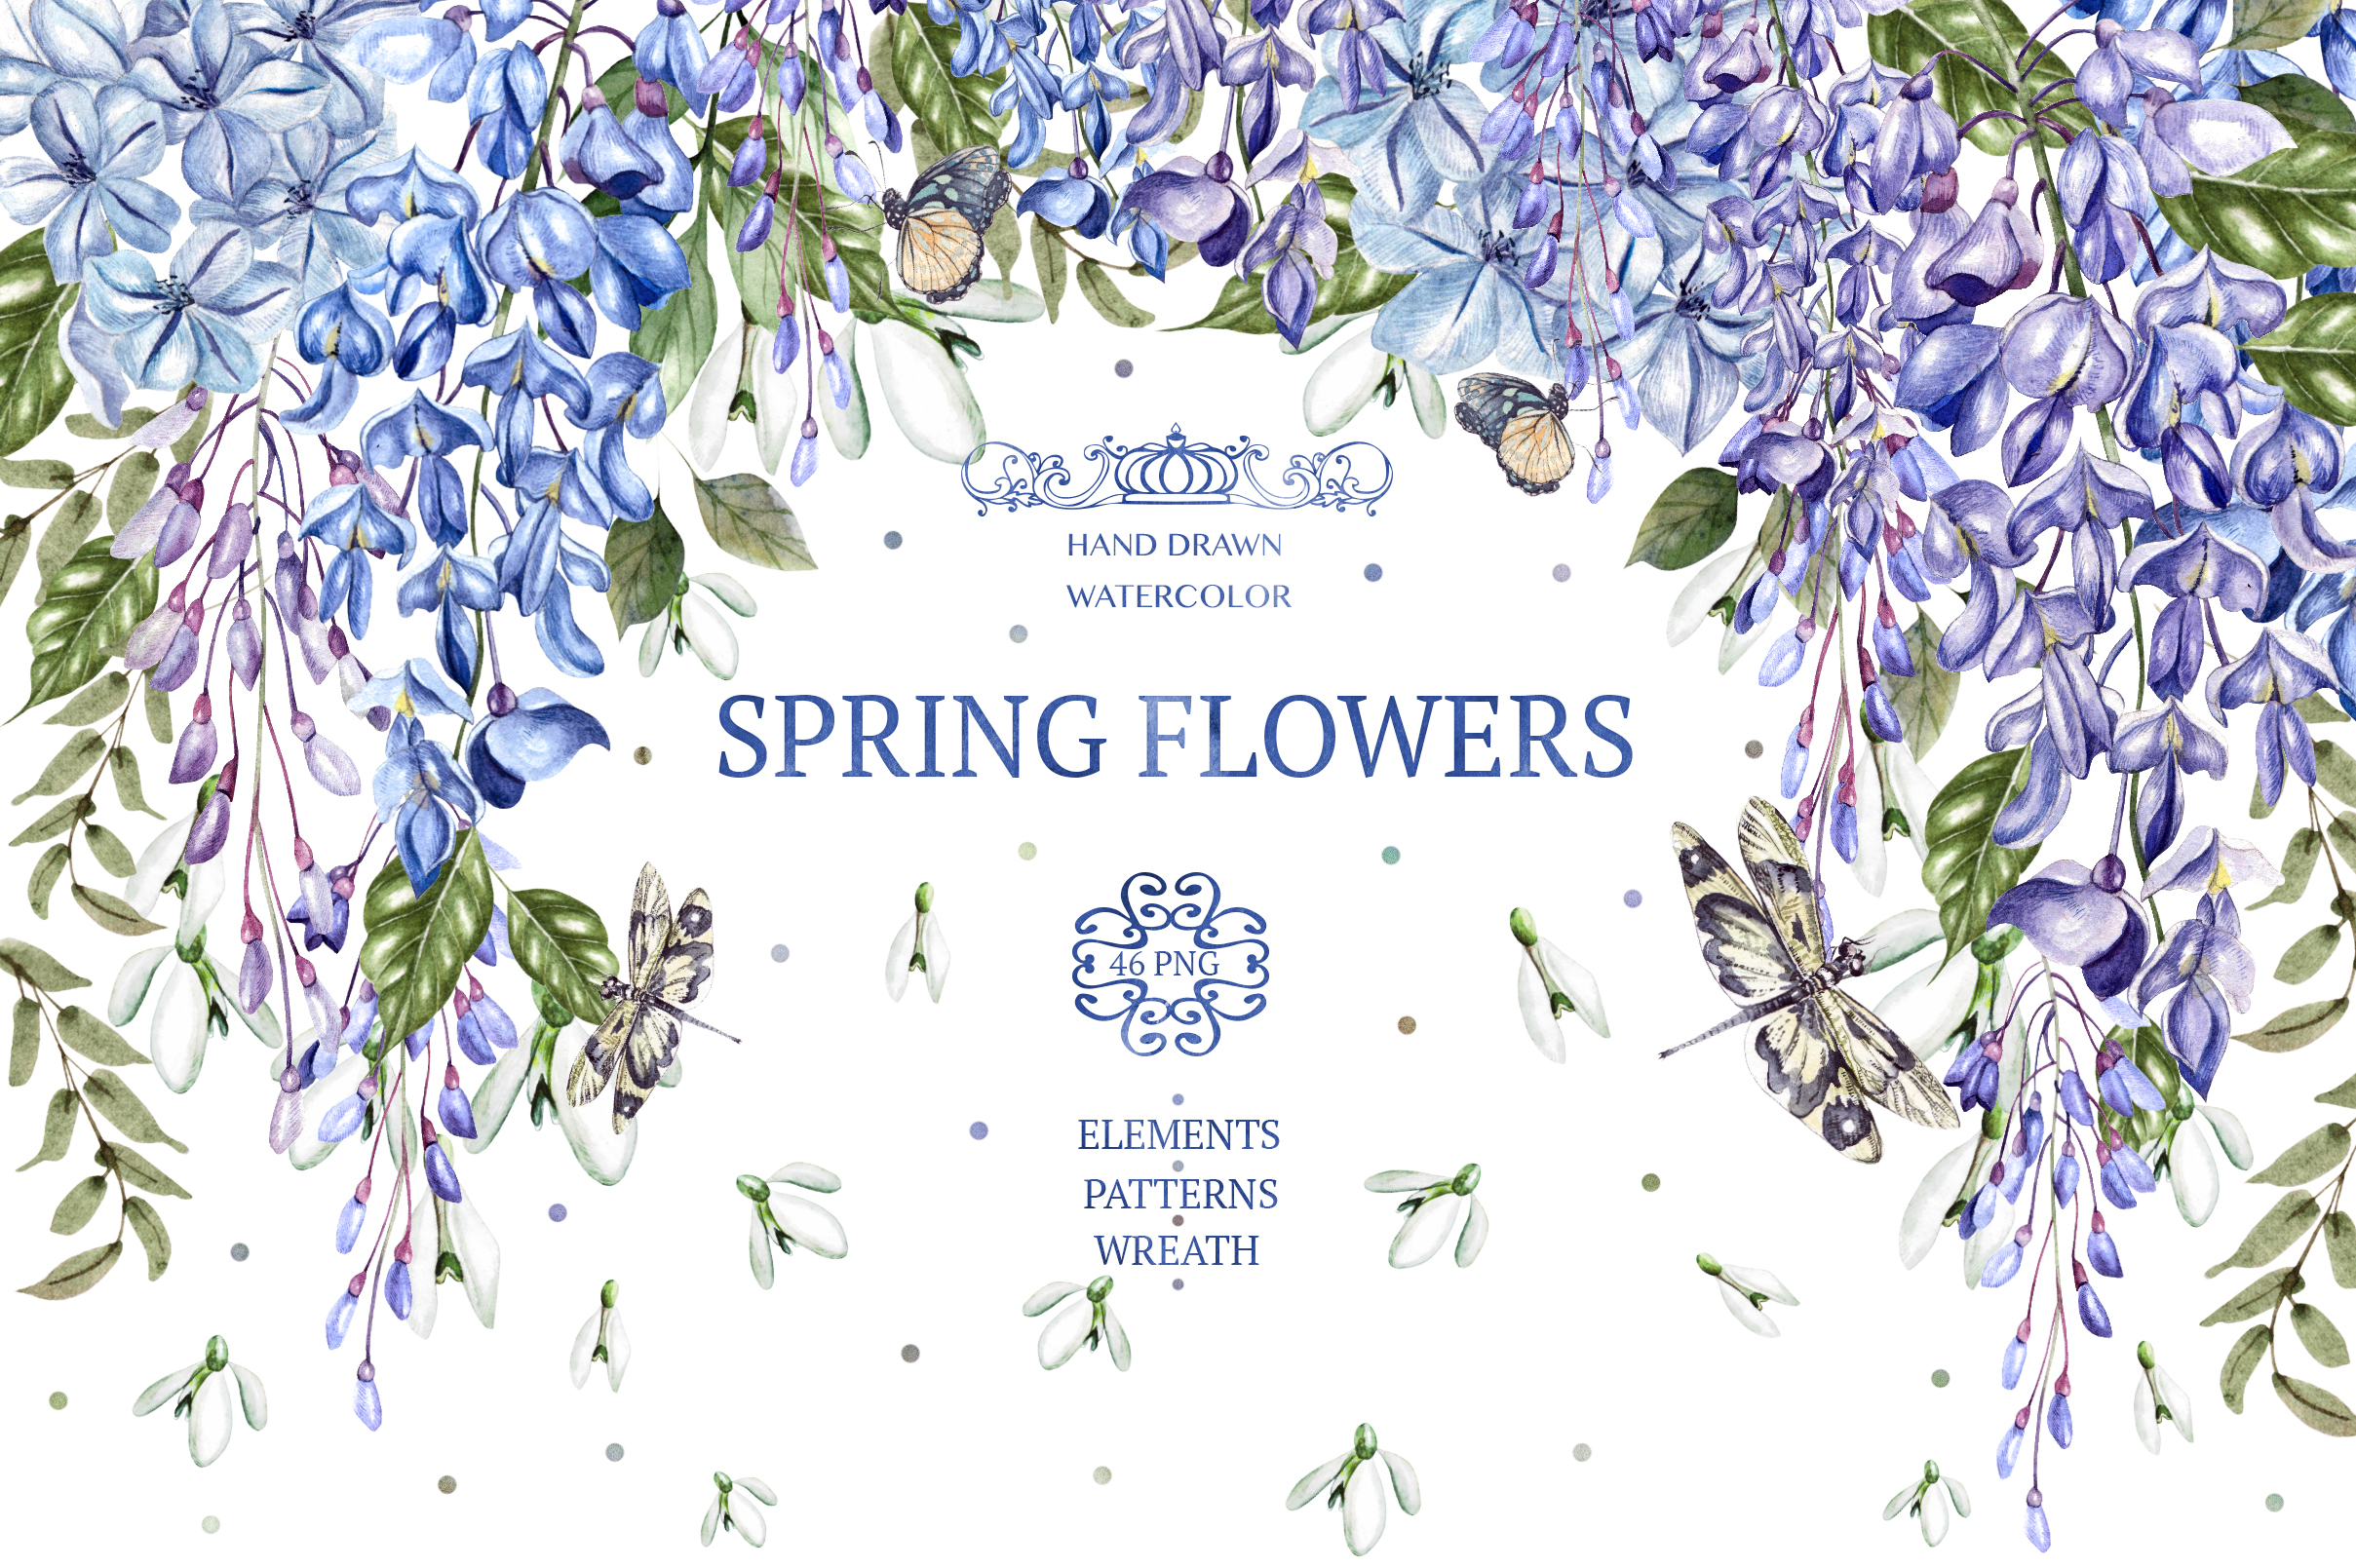 Download Free Watercolor Spring Flowers Graphic By Knopazyzy Creative Fabrica for Cricut Explore, Silhouette and other cutting machines.